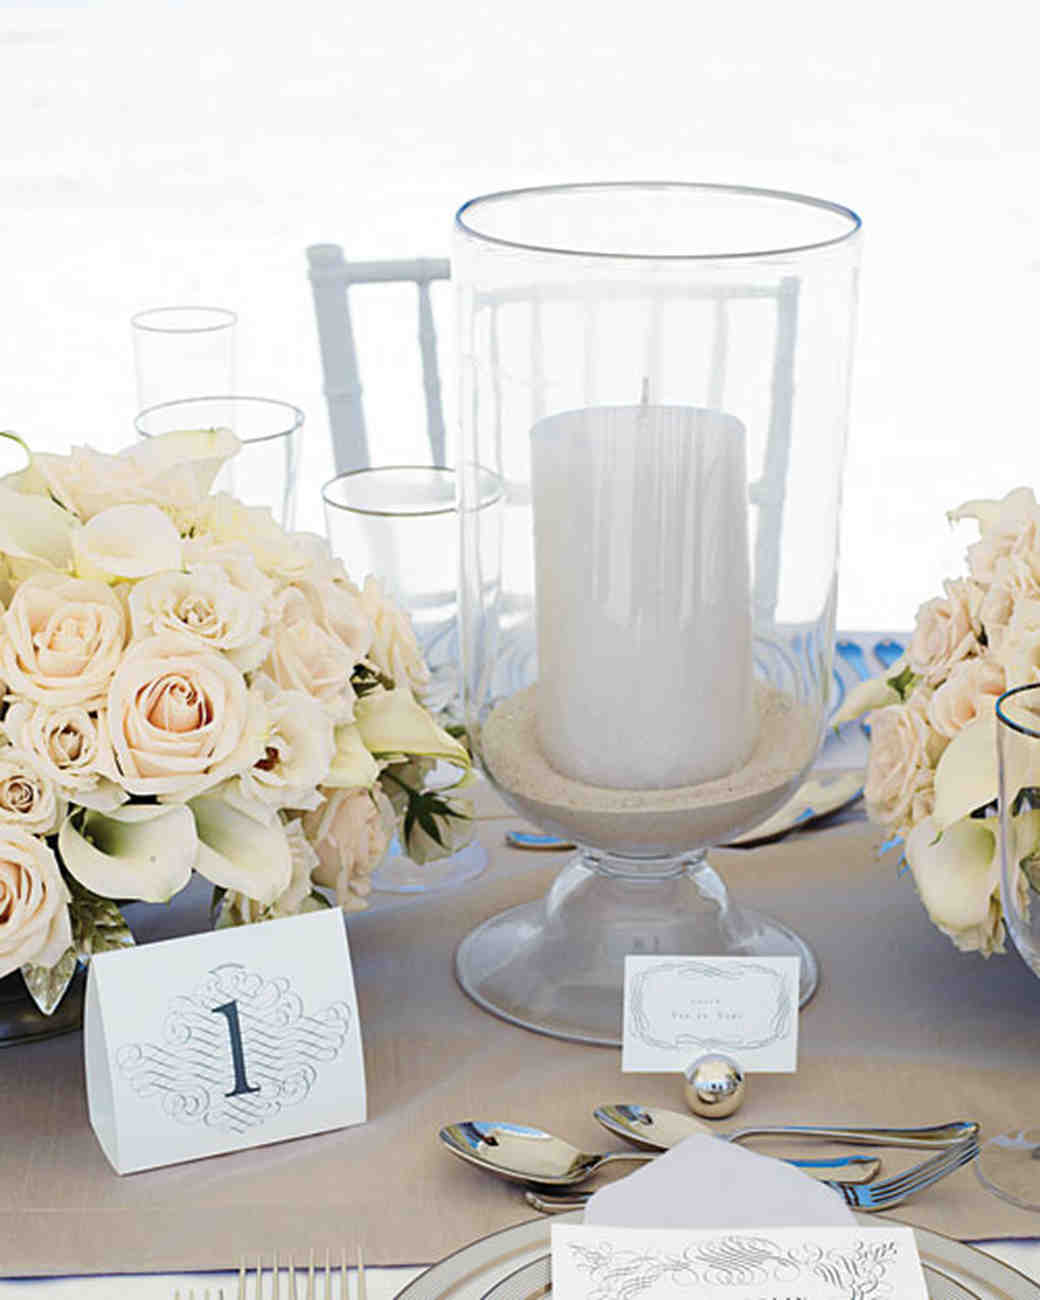 40 of Our Favorite Floral Wedding Centerpieces | Martha Stewart Weddings